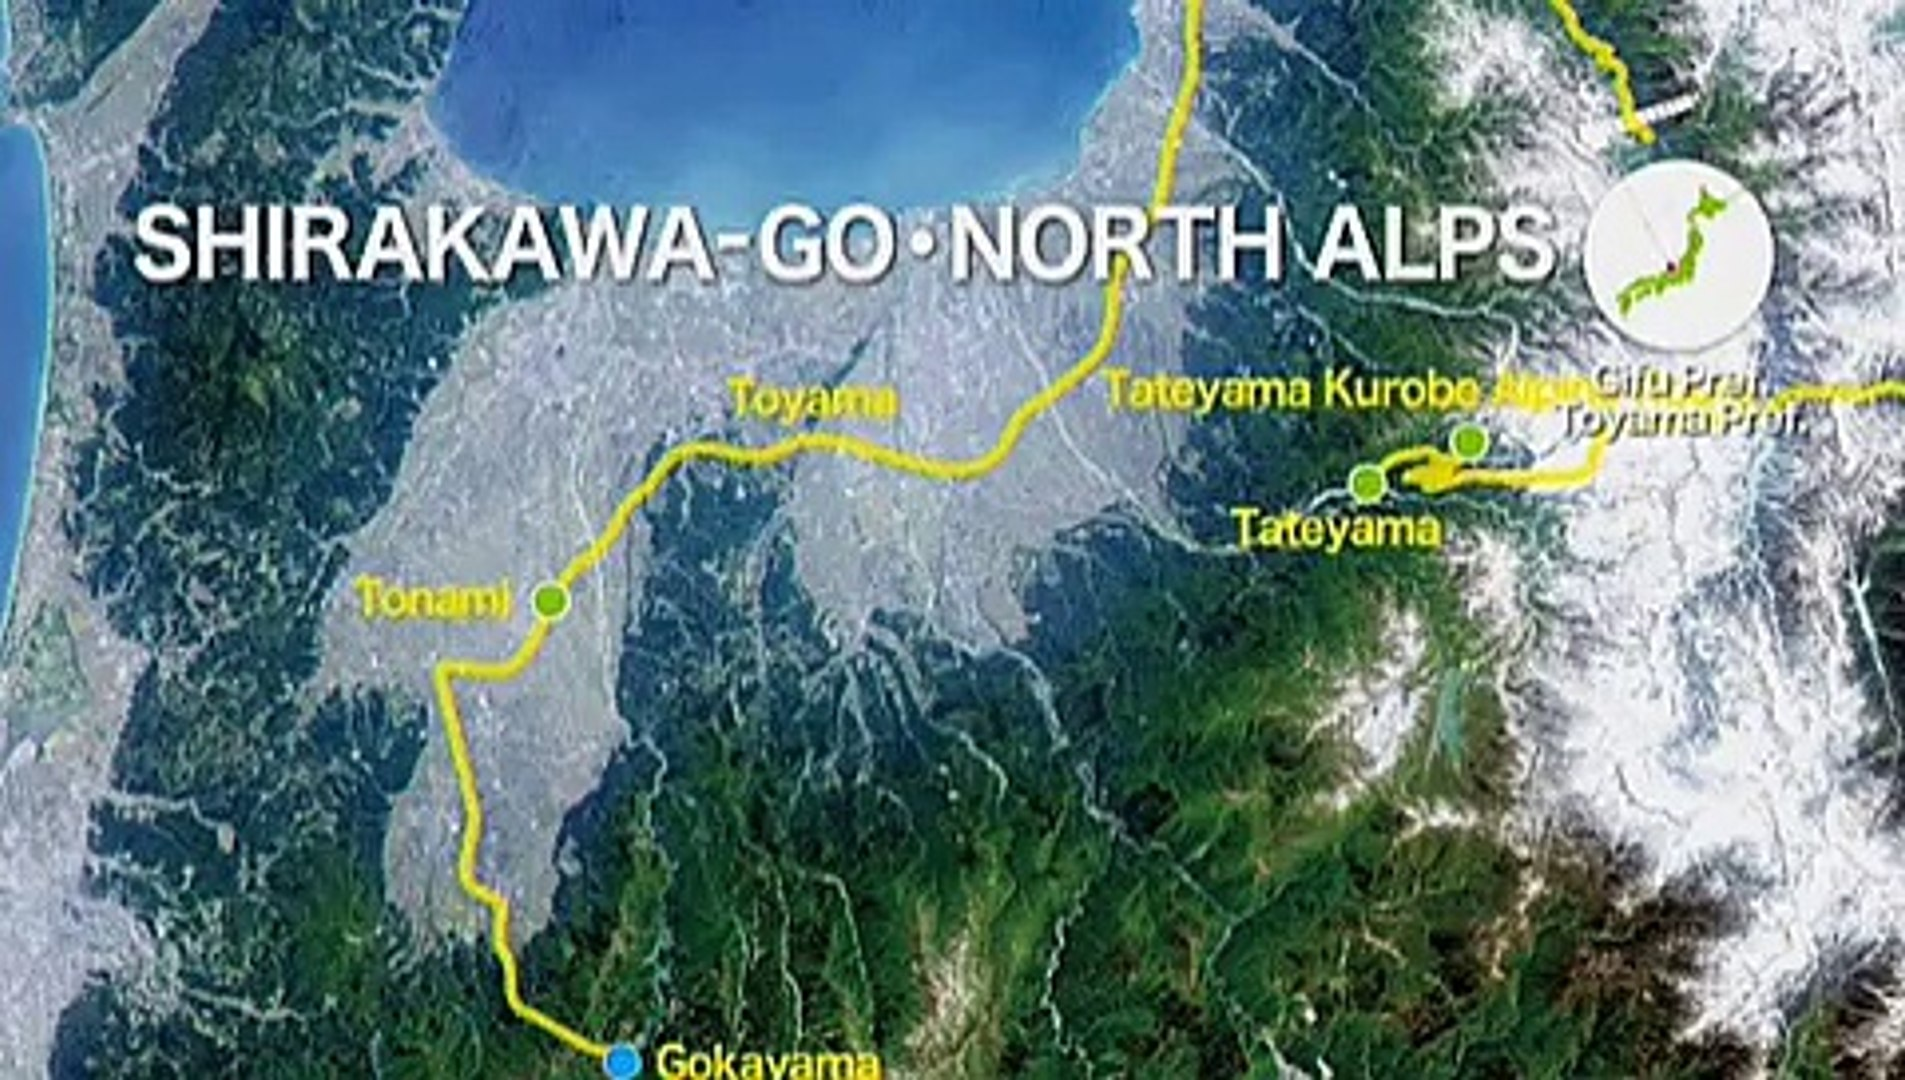 Viewing the beauty of Japan from outer space -Shirakawa-go・North alps-